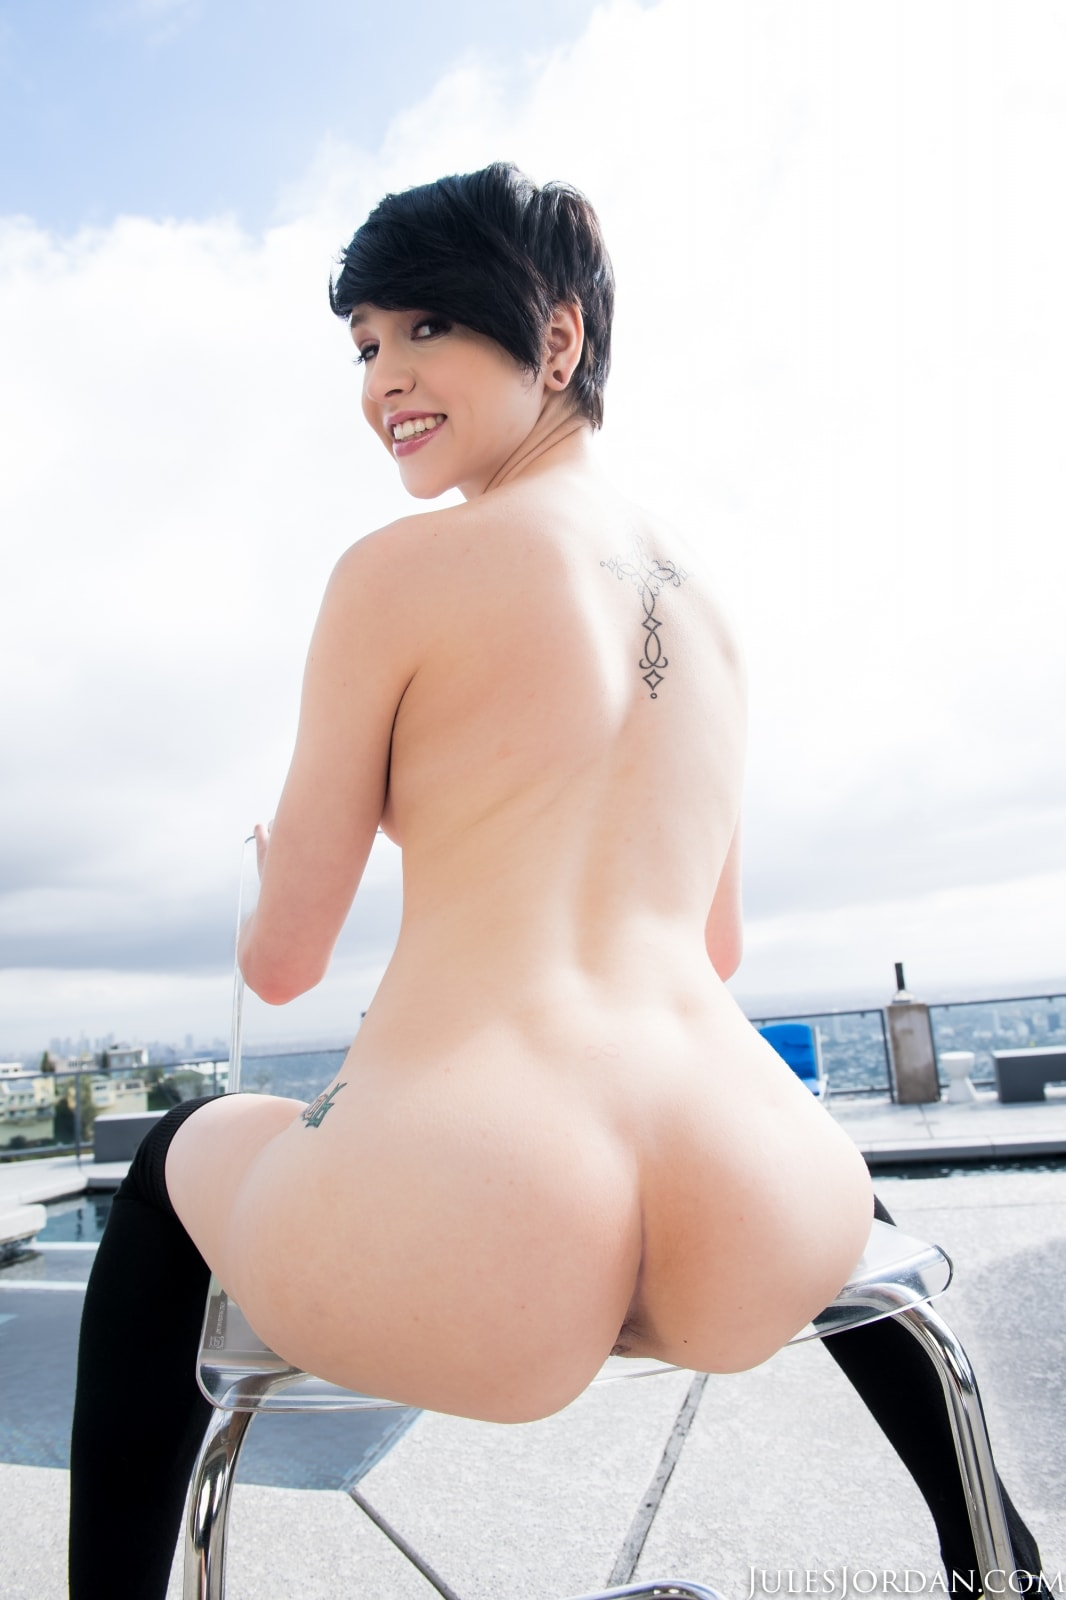 Small dick porn online for free